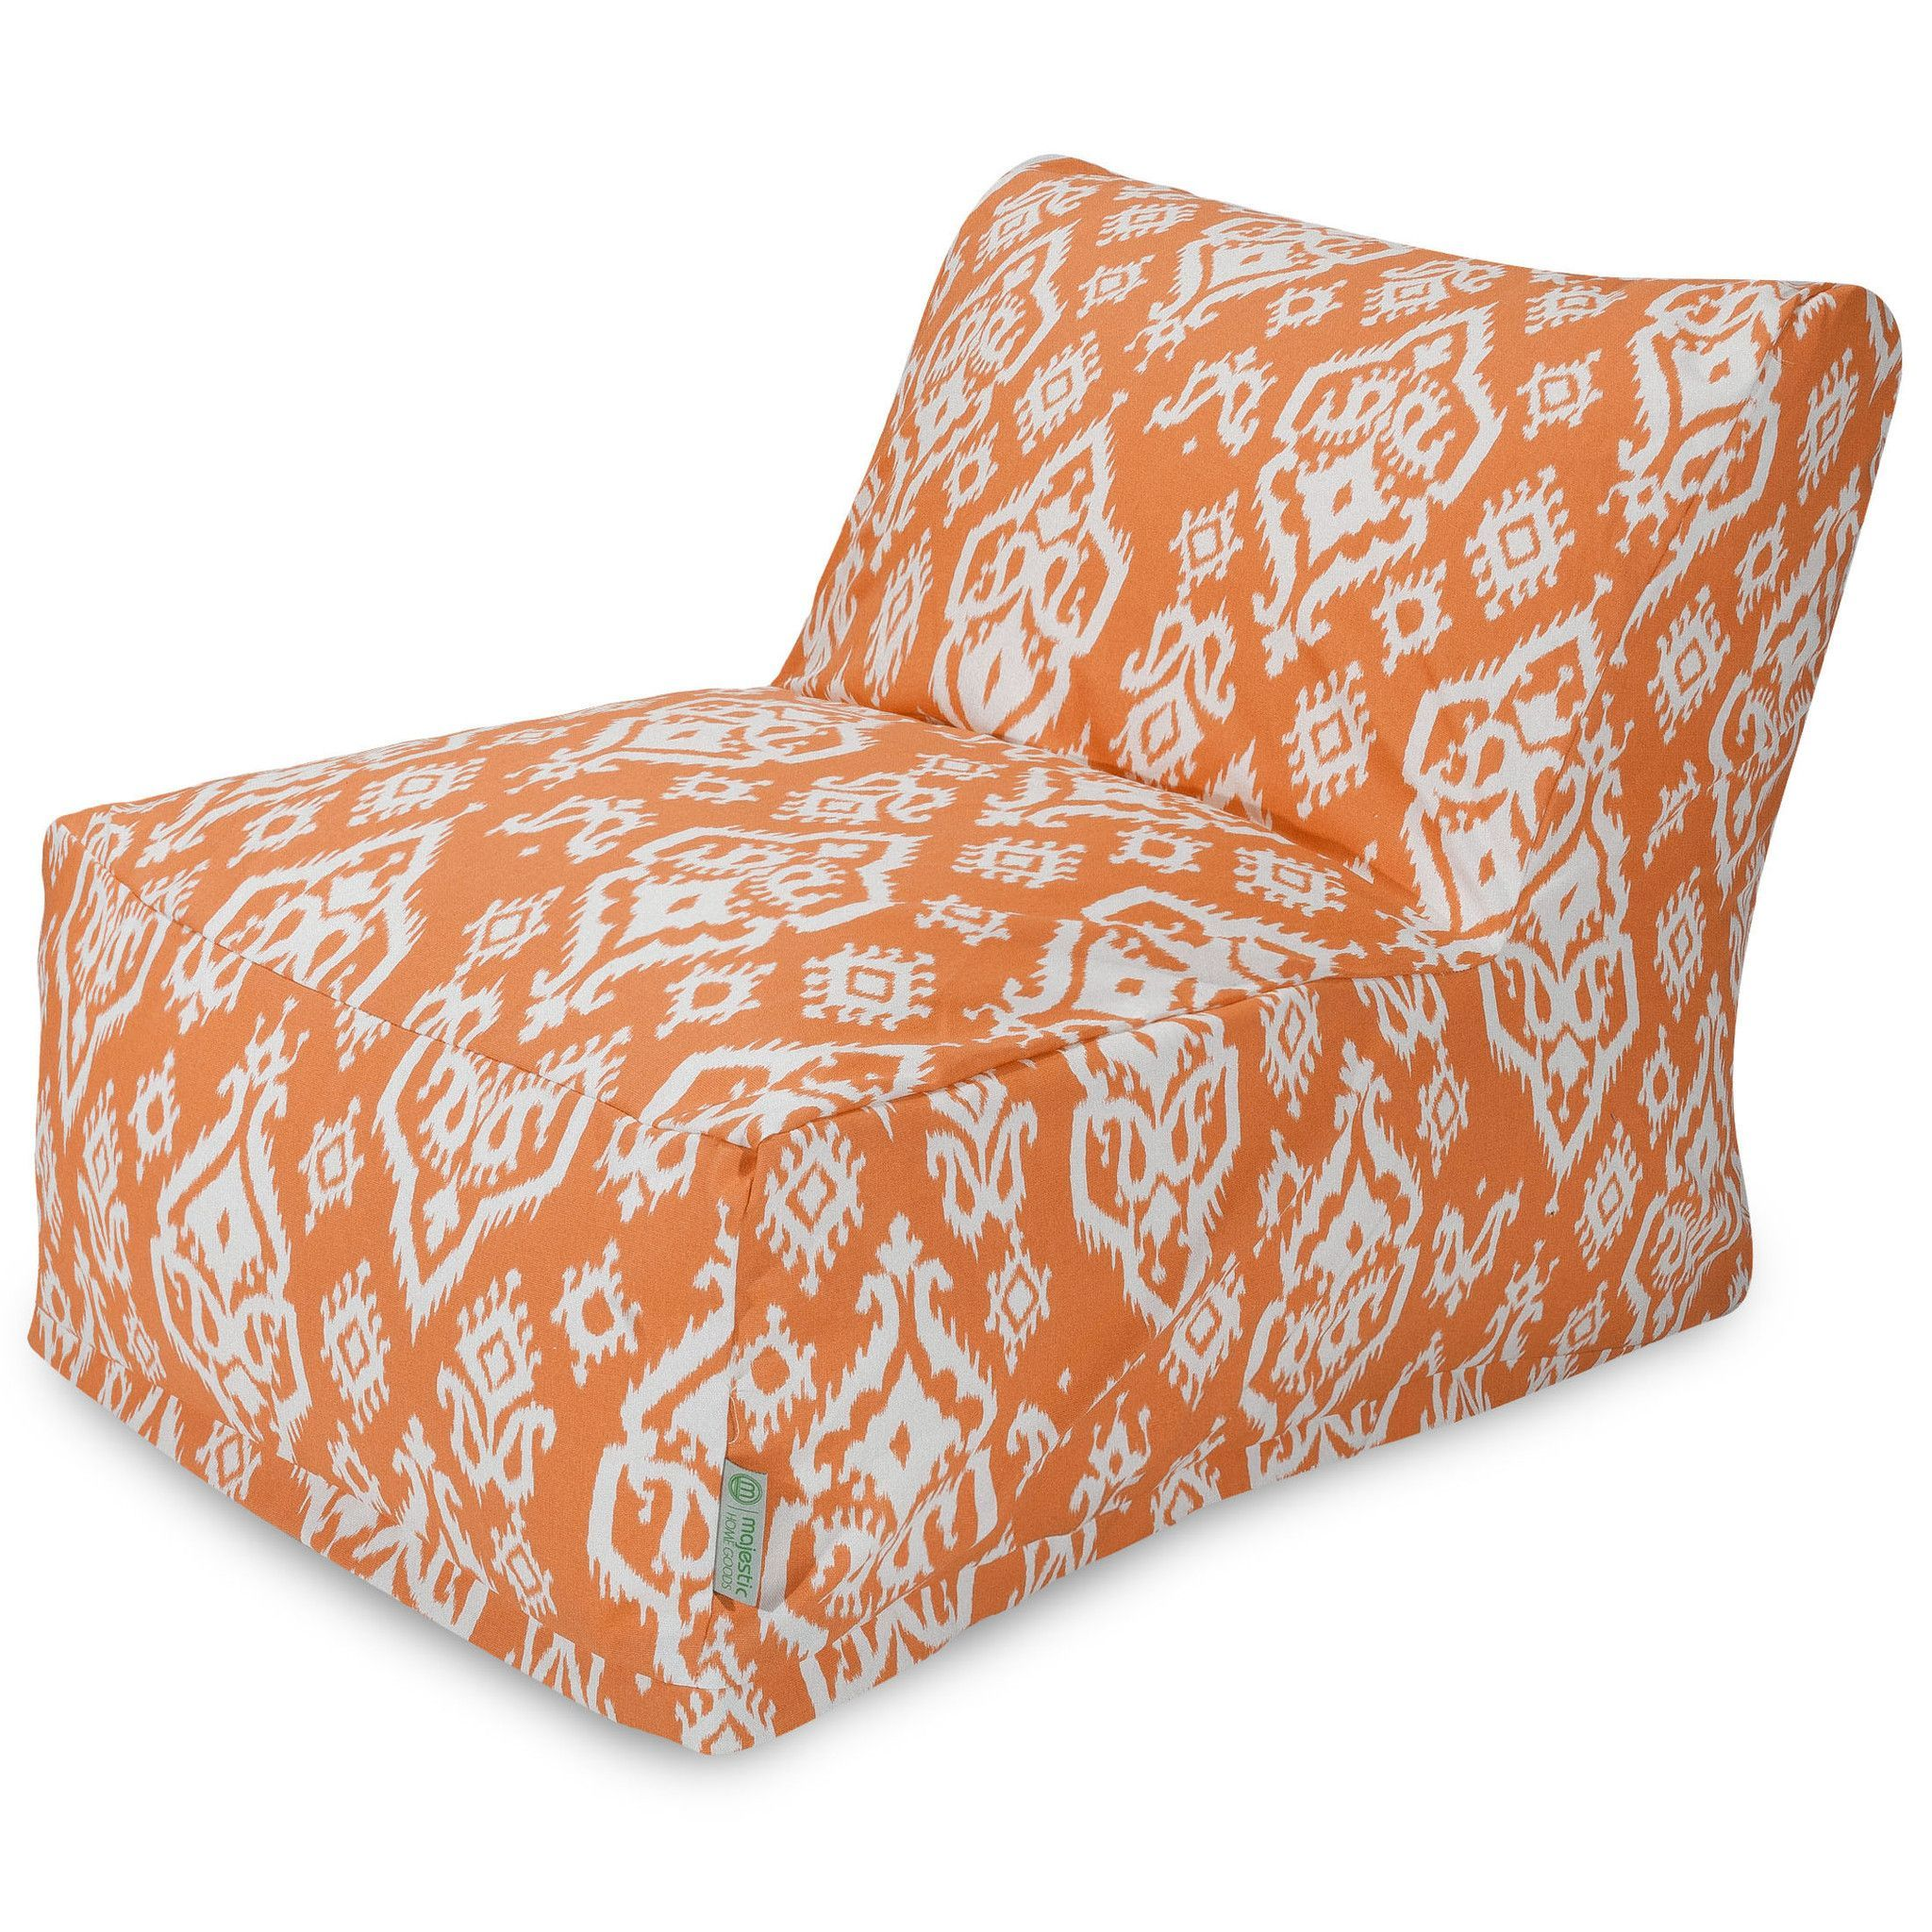 Pin on Trending Furniture And Decor